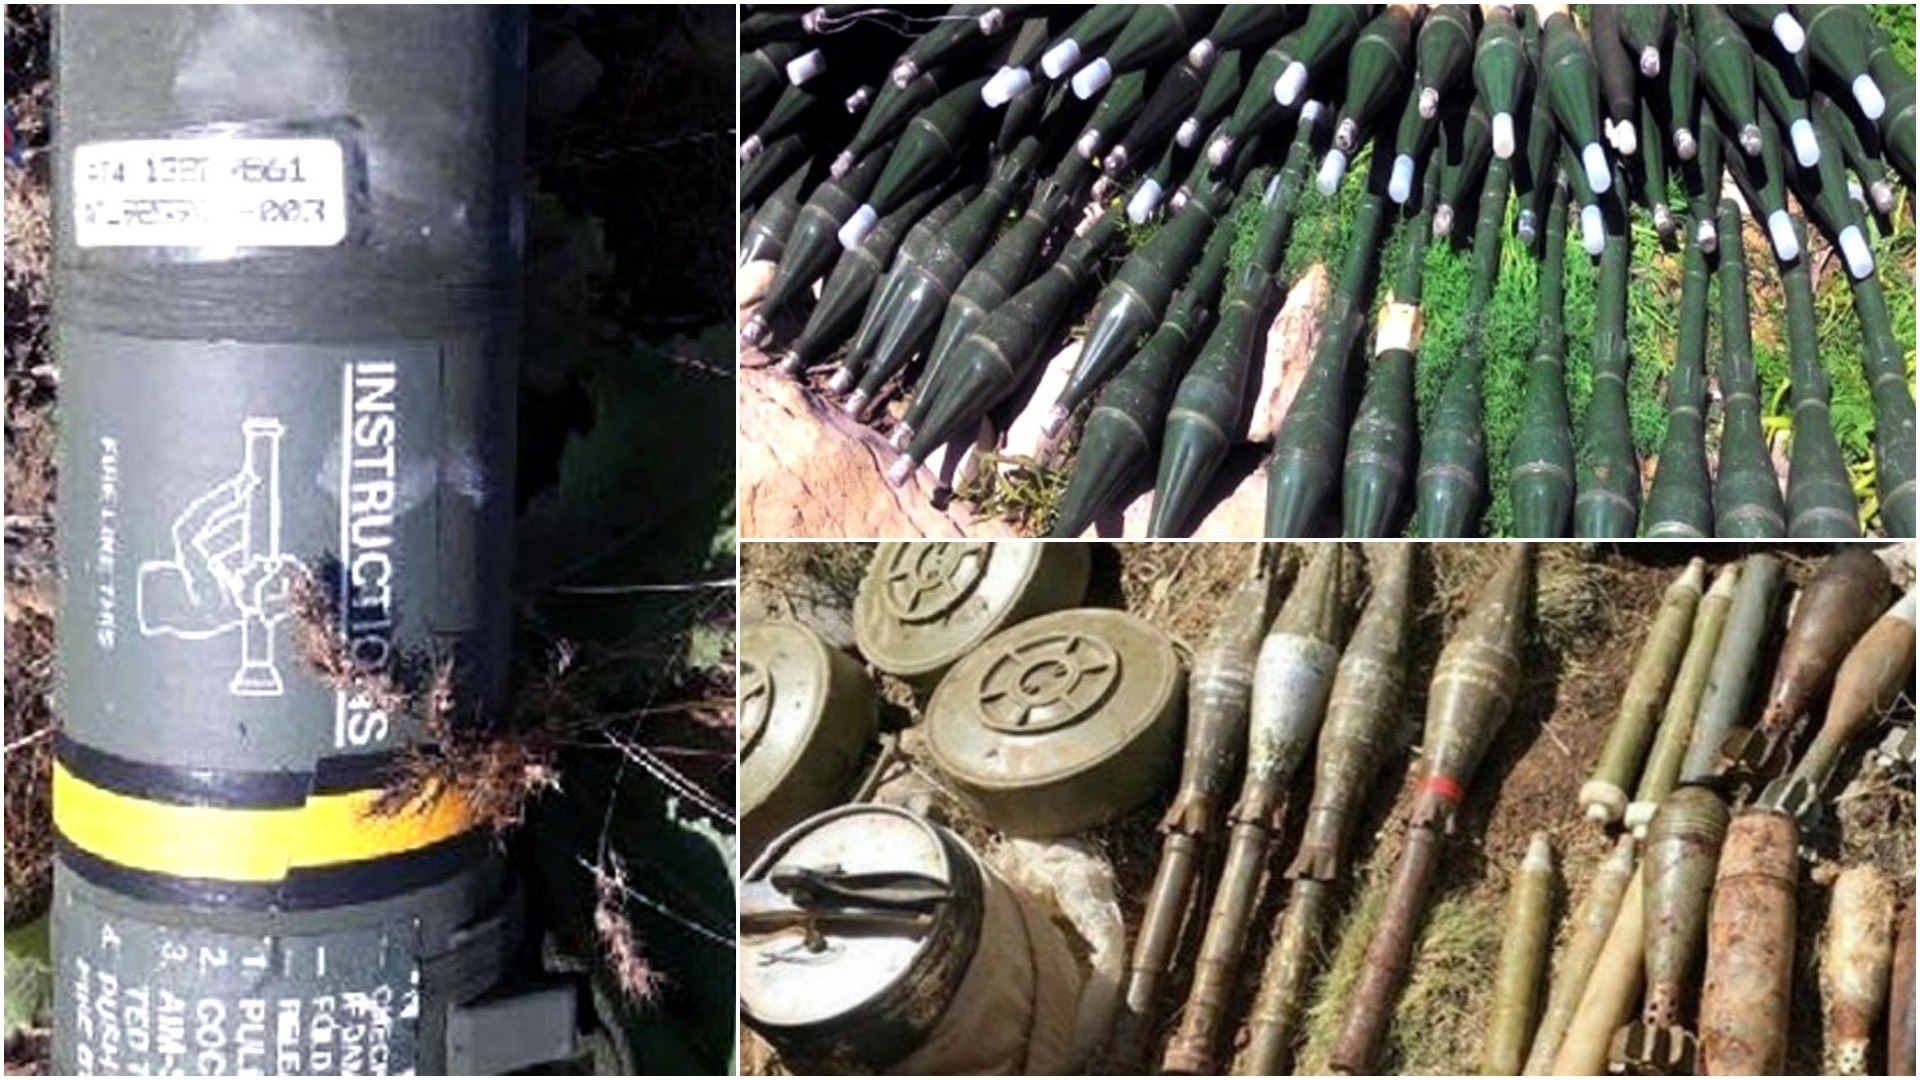 The photos show the weapons obtained from deceased PKK militants in southeast Turkey.